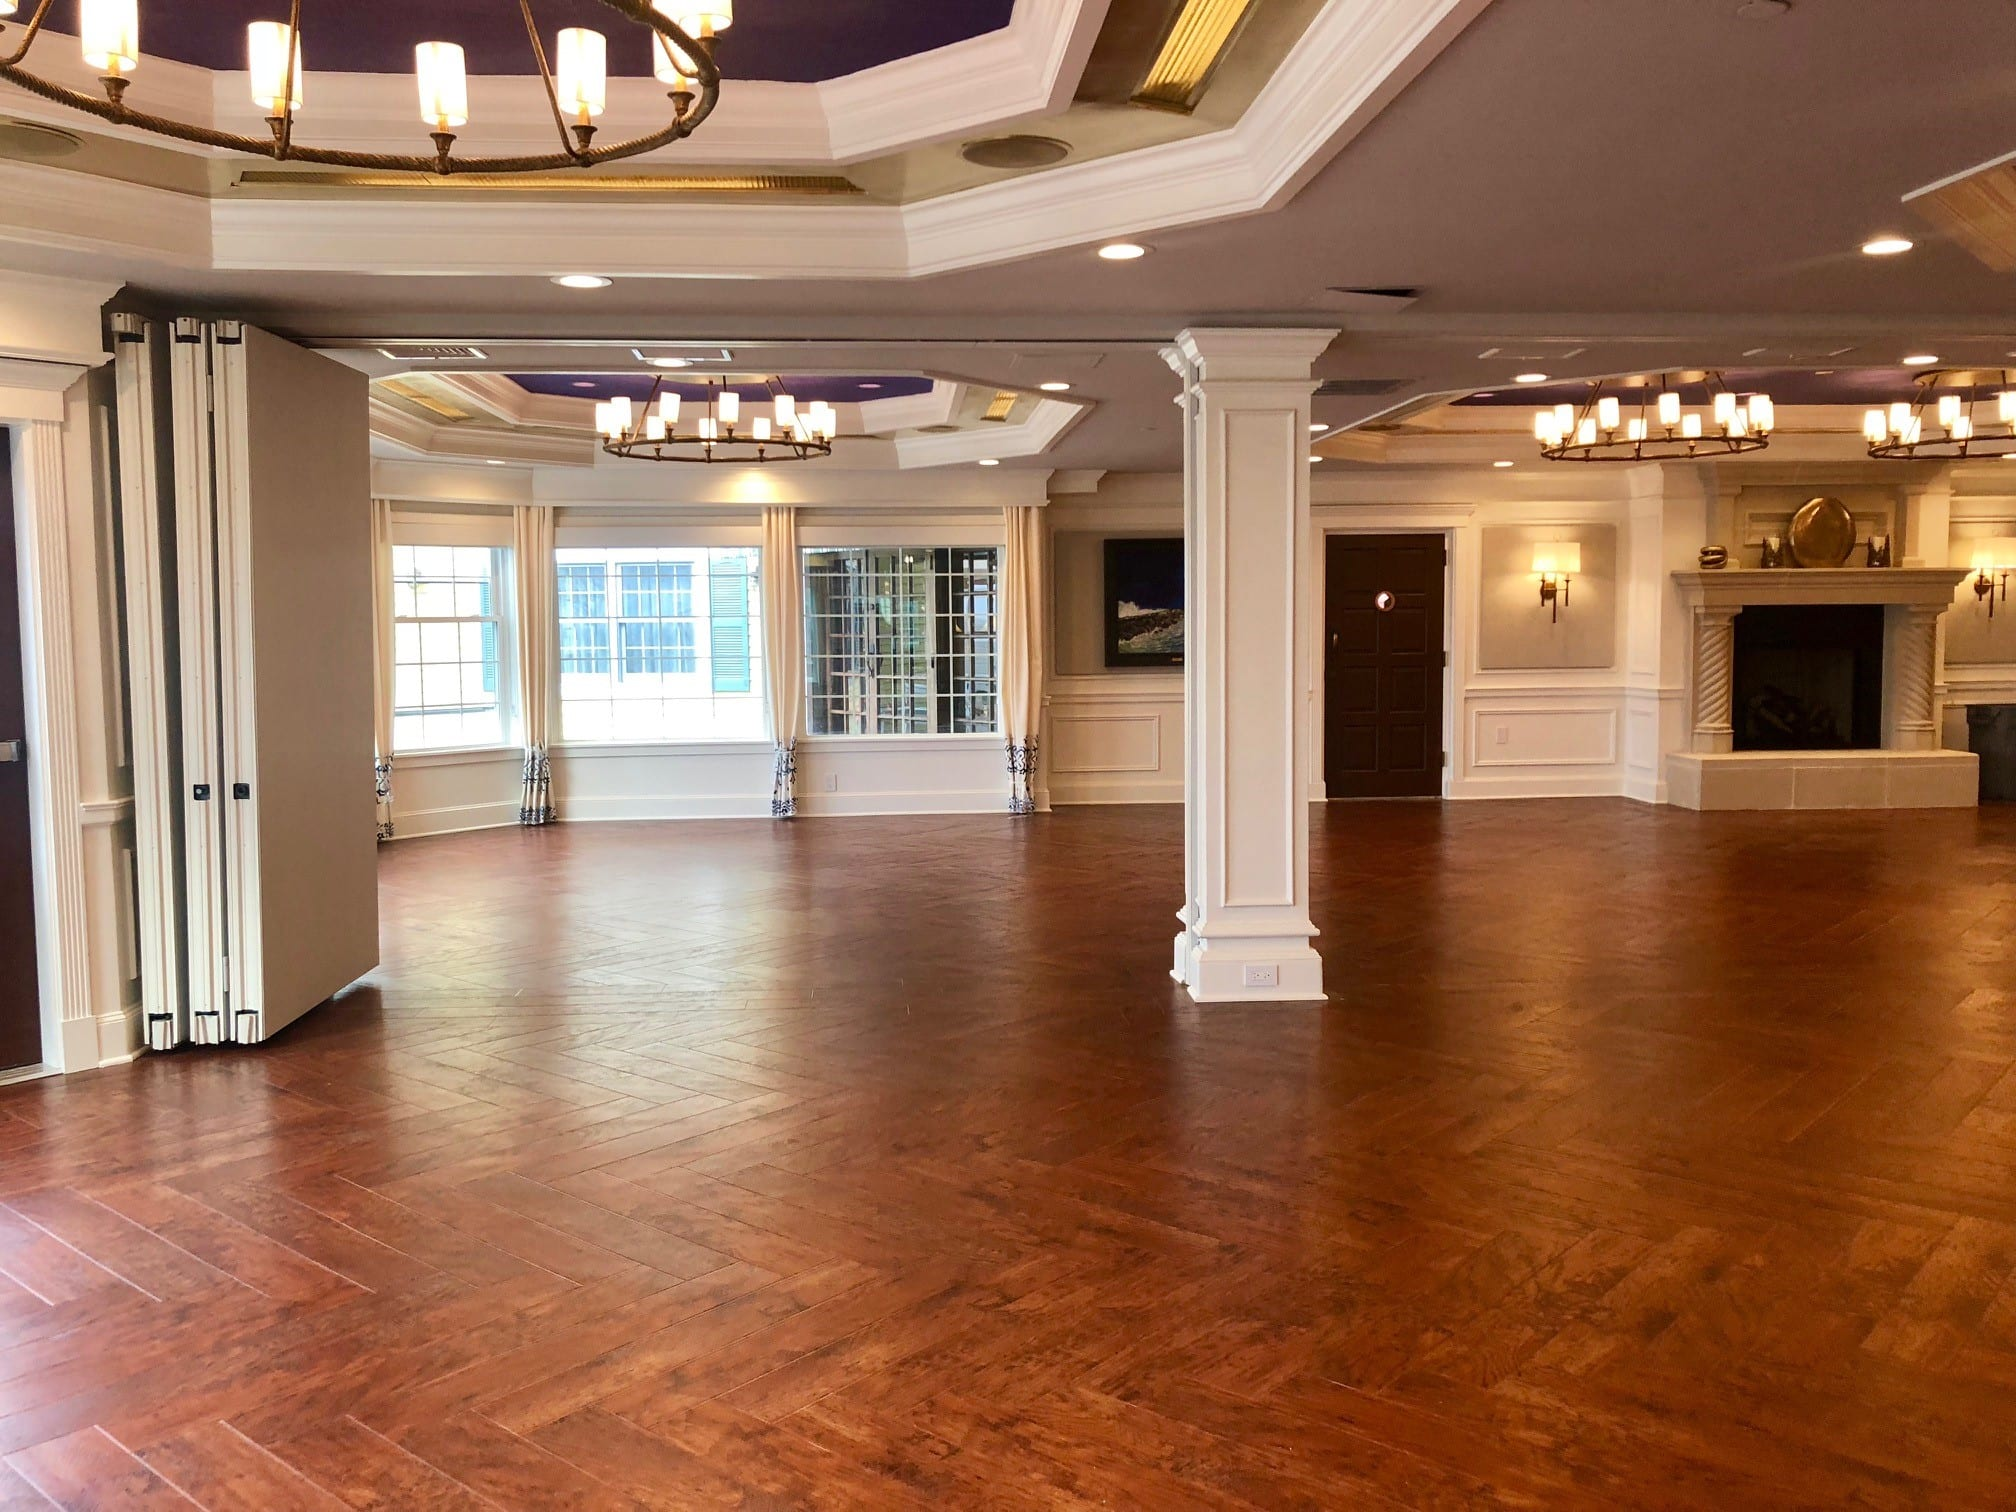 Lighthouse gallery event room.